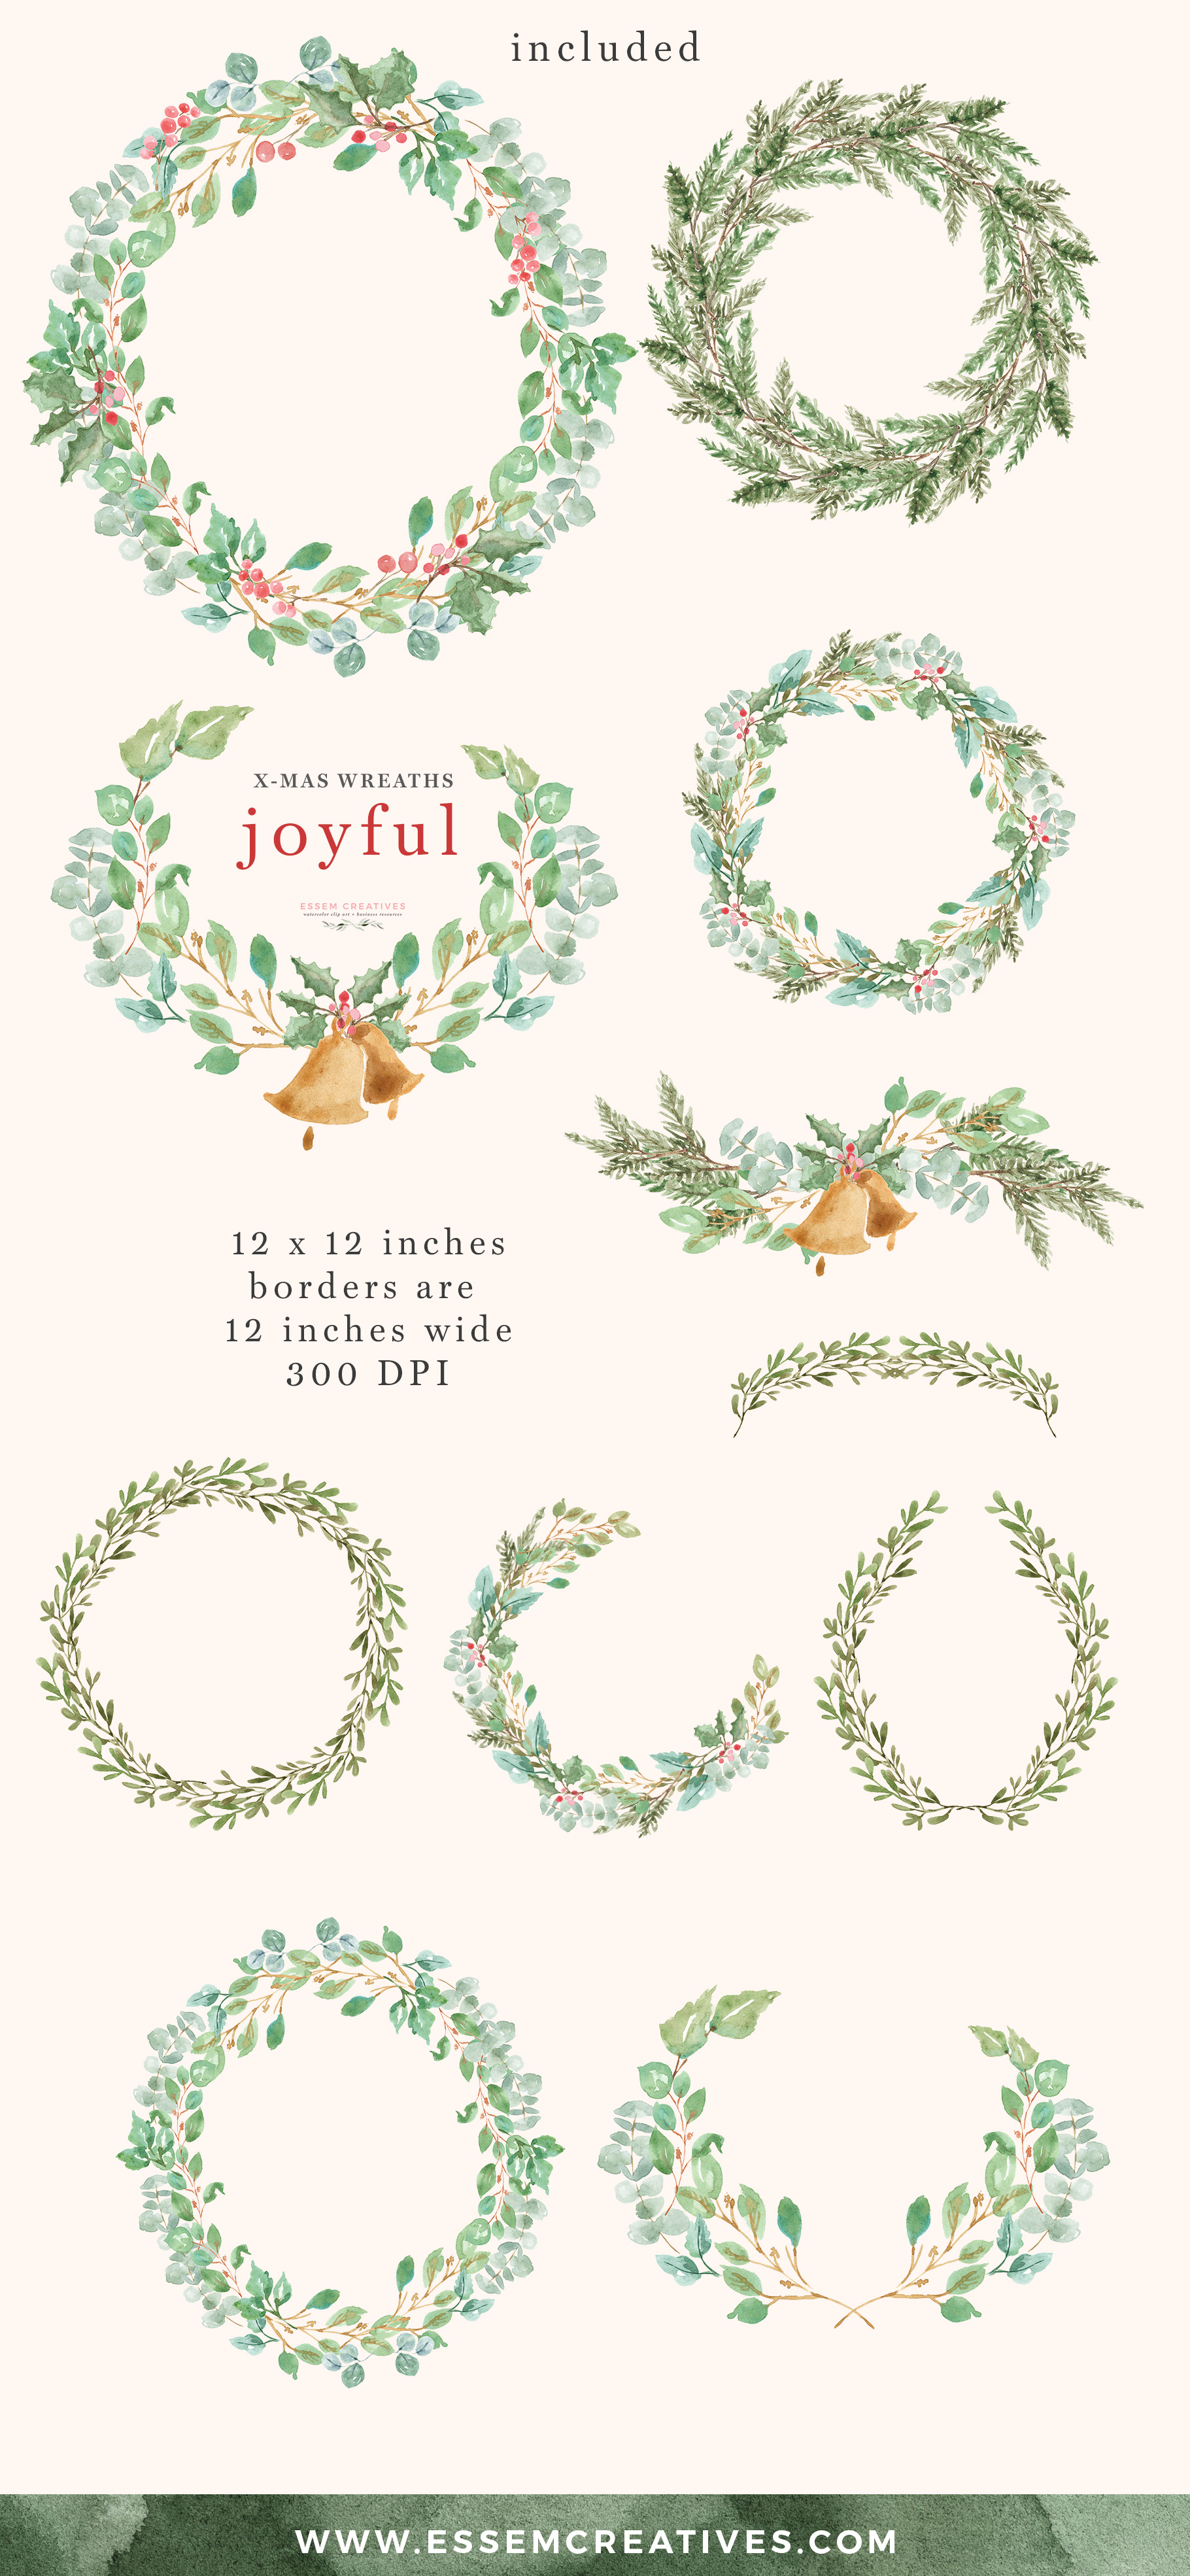 Watercolor Christmas Wreath Clipart for Holiday Cards.